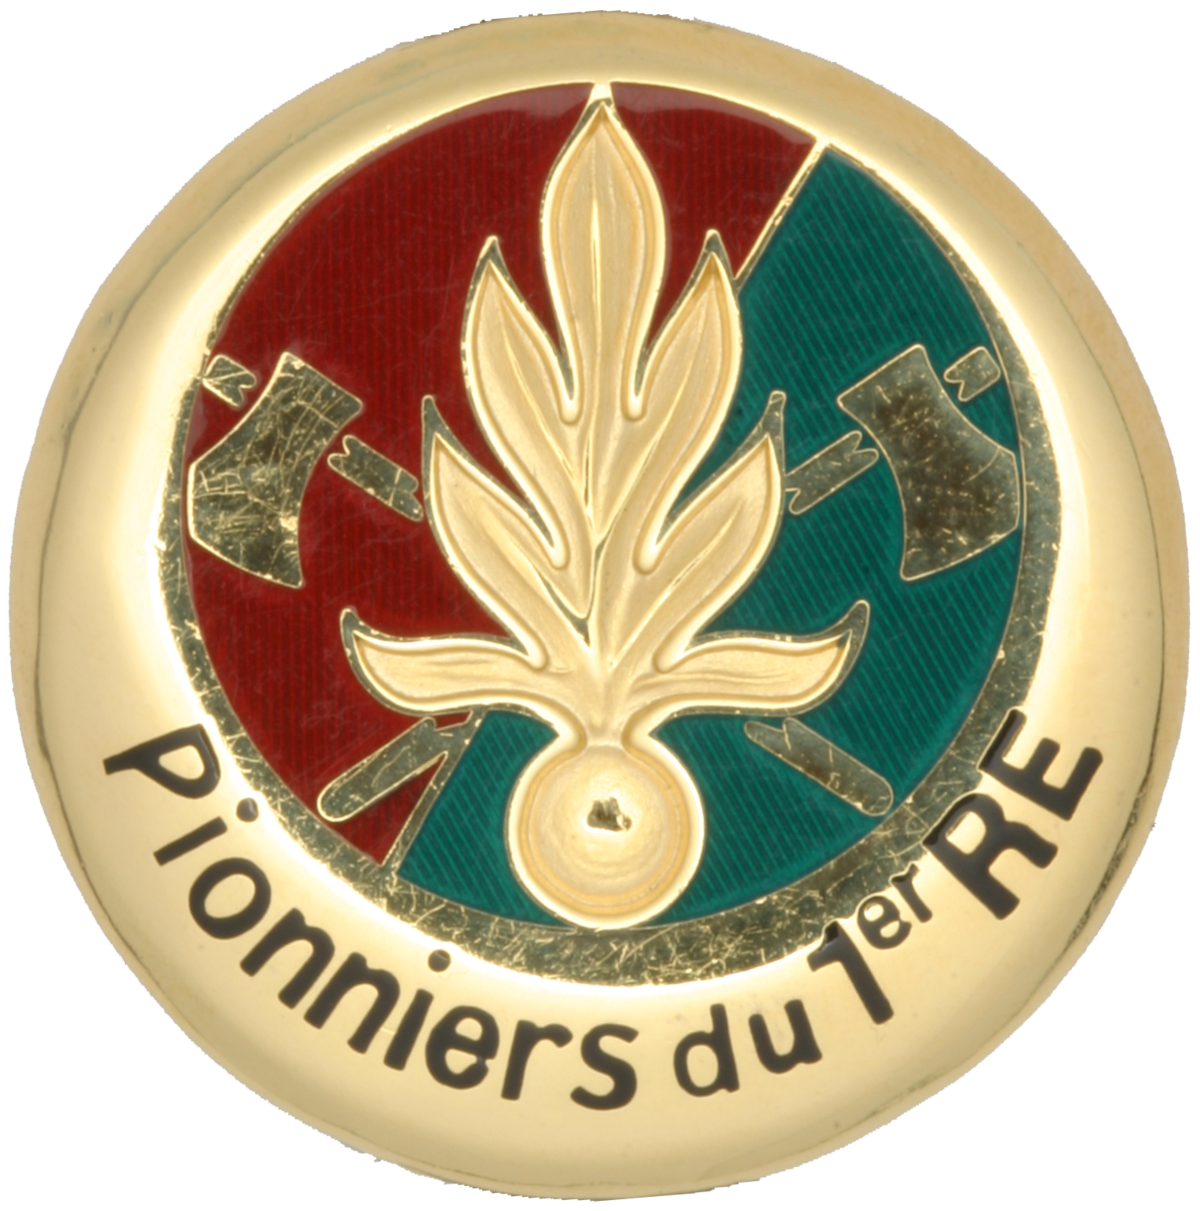 May The Fourth Be With You French: Foreign Legion Pioneers (Pionniers)